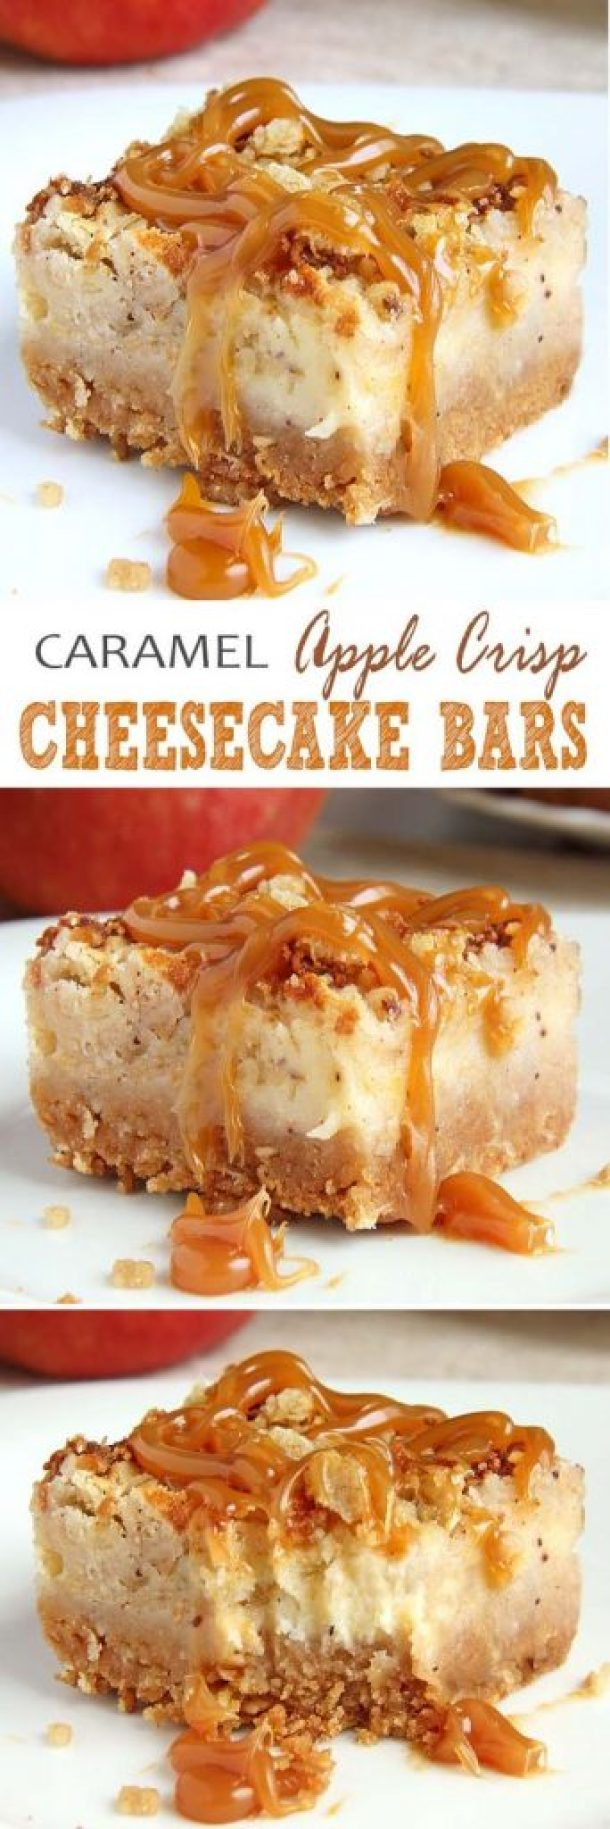 Caramel Apple Crisp Cheesecake Bars Recipe | Sugar Apron - Apple Recipes